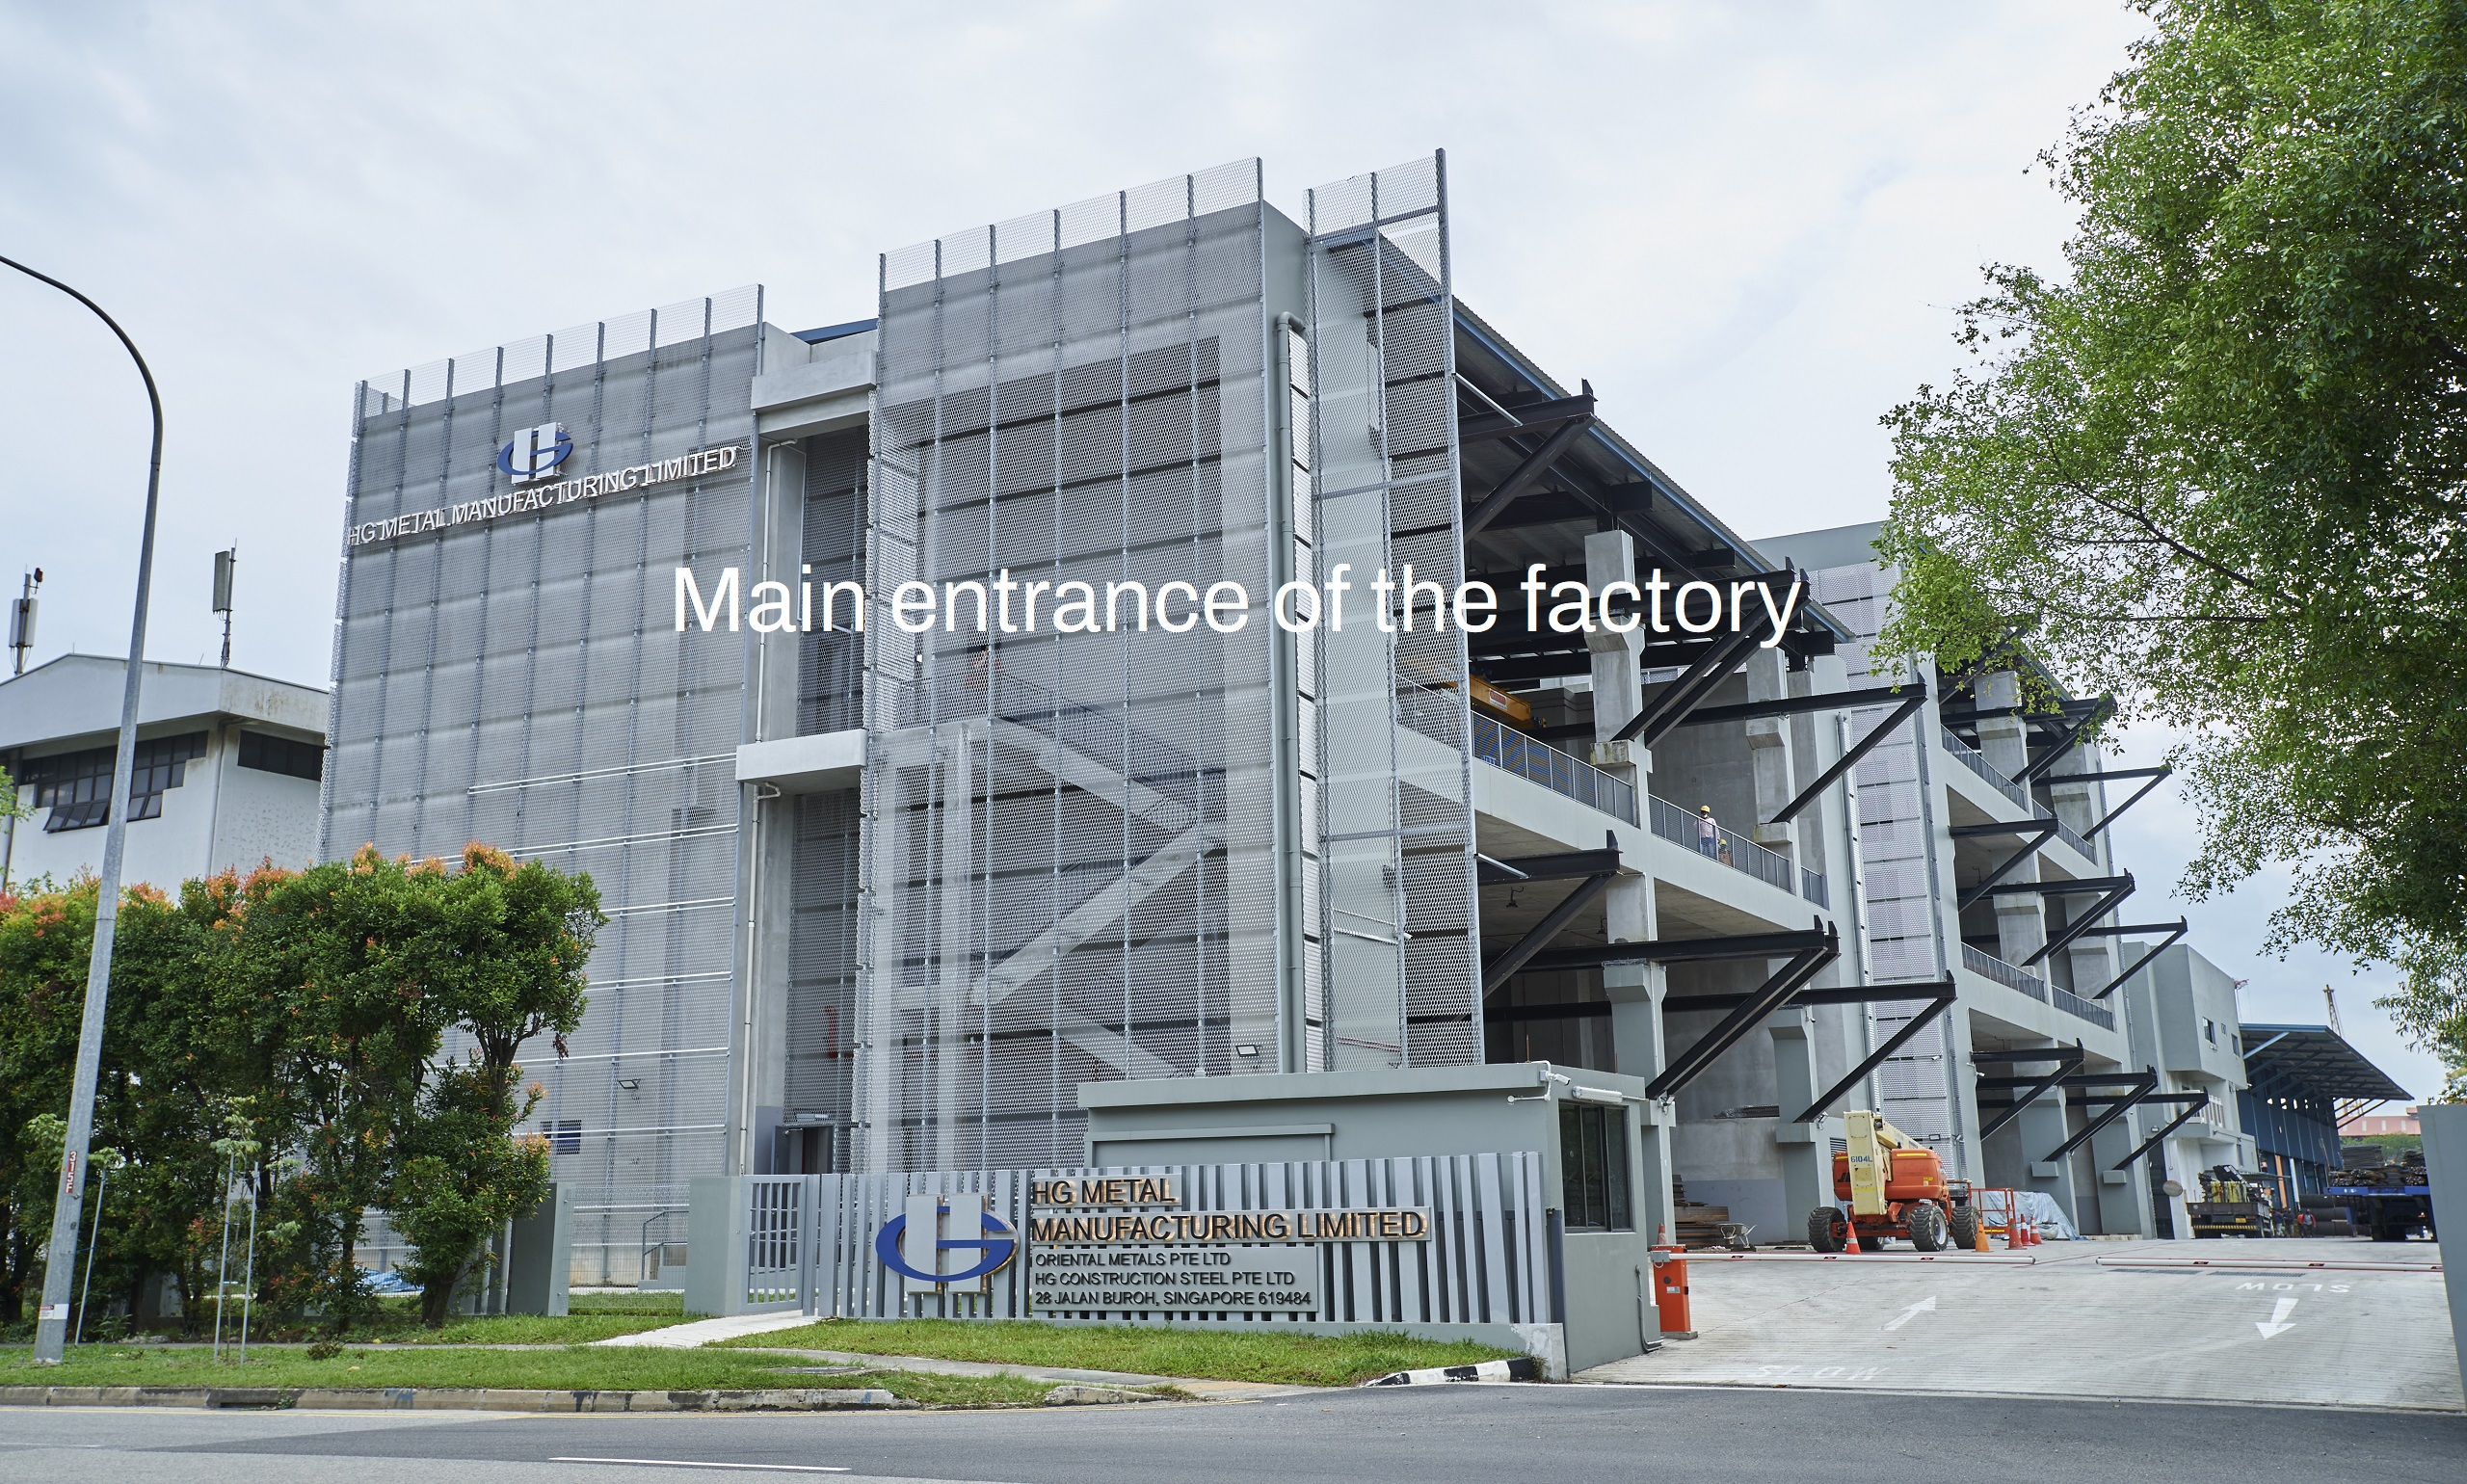 Main entrance of the factory